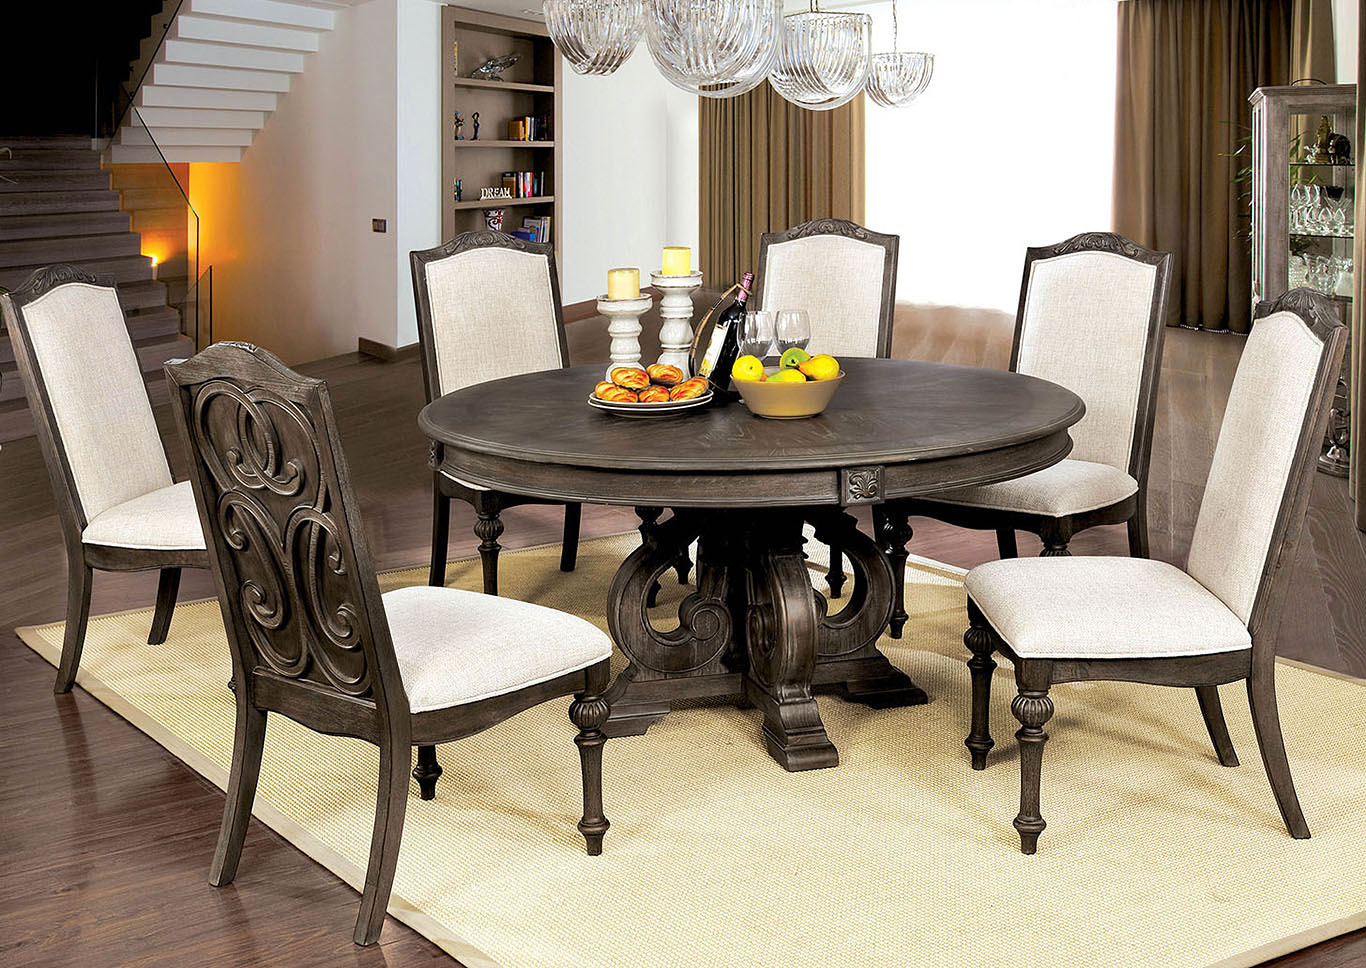 Dream Decor – Furniture – Springfield – Ma Arcadia Rustic Natural Intended For Recent Springfield 3 Piece Dining Sets (View 3 of 20)